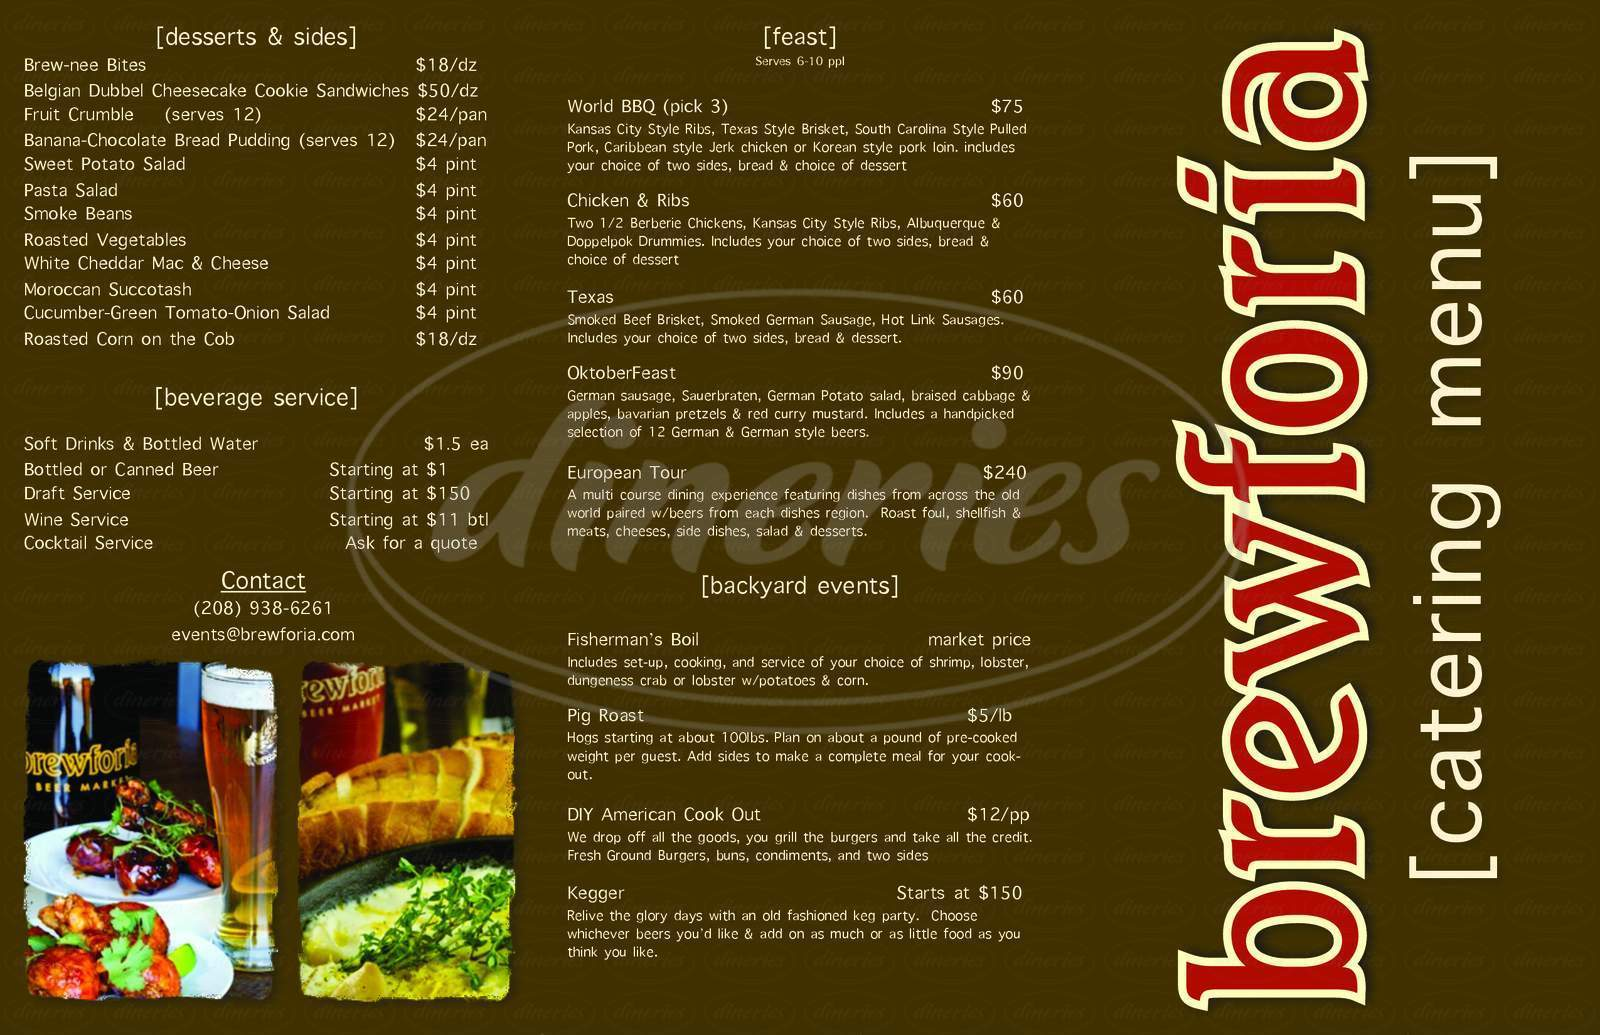 menu for Brewforia Beer Market